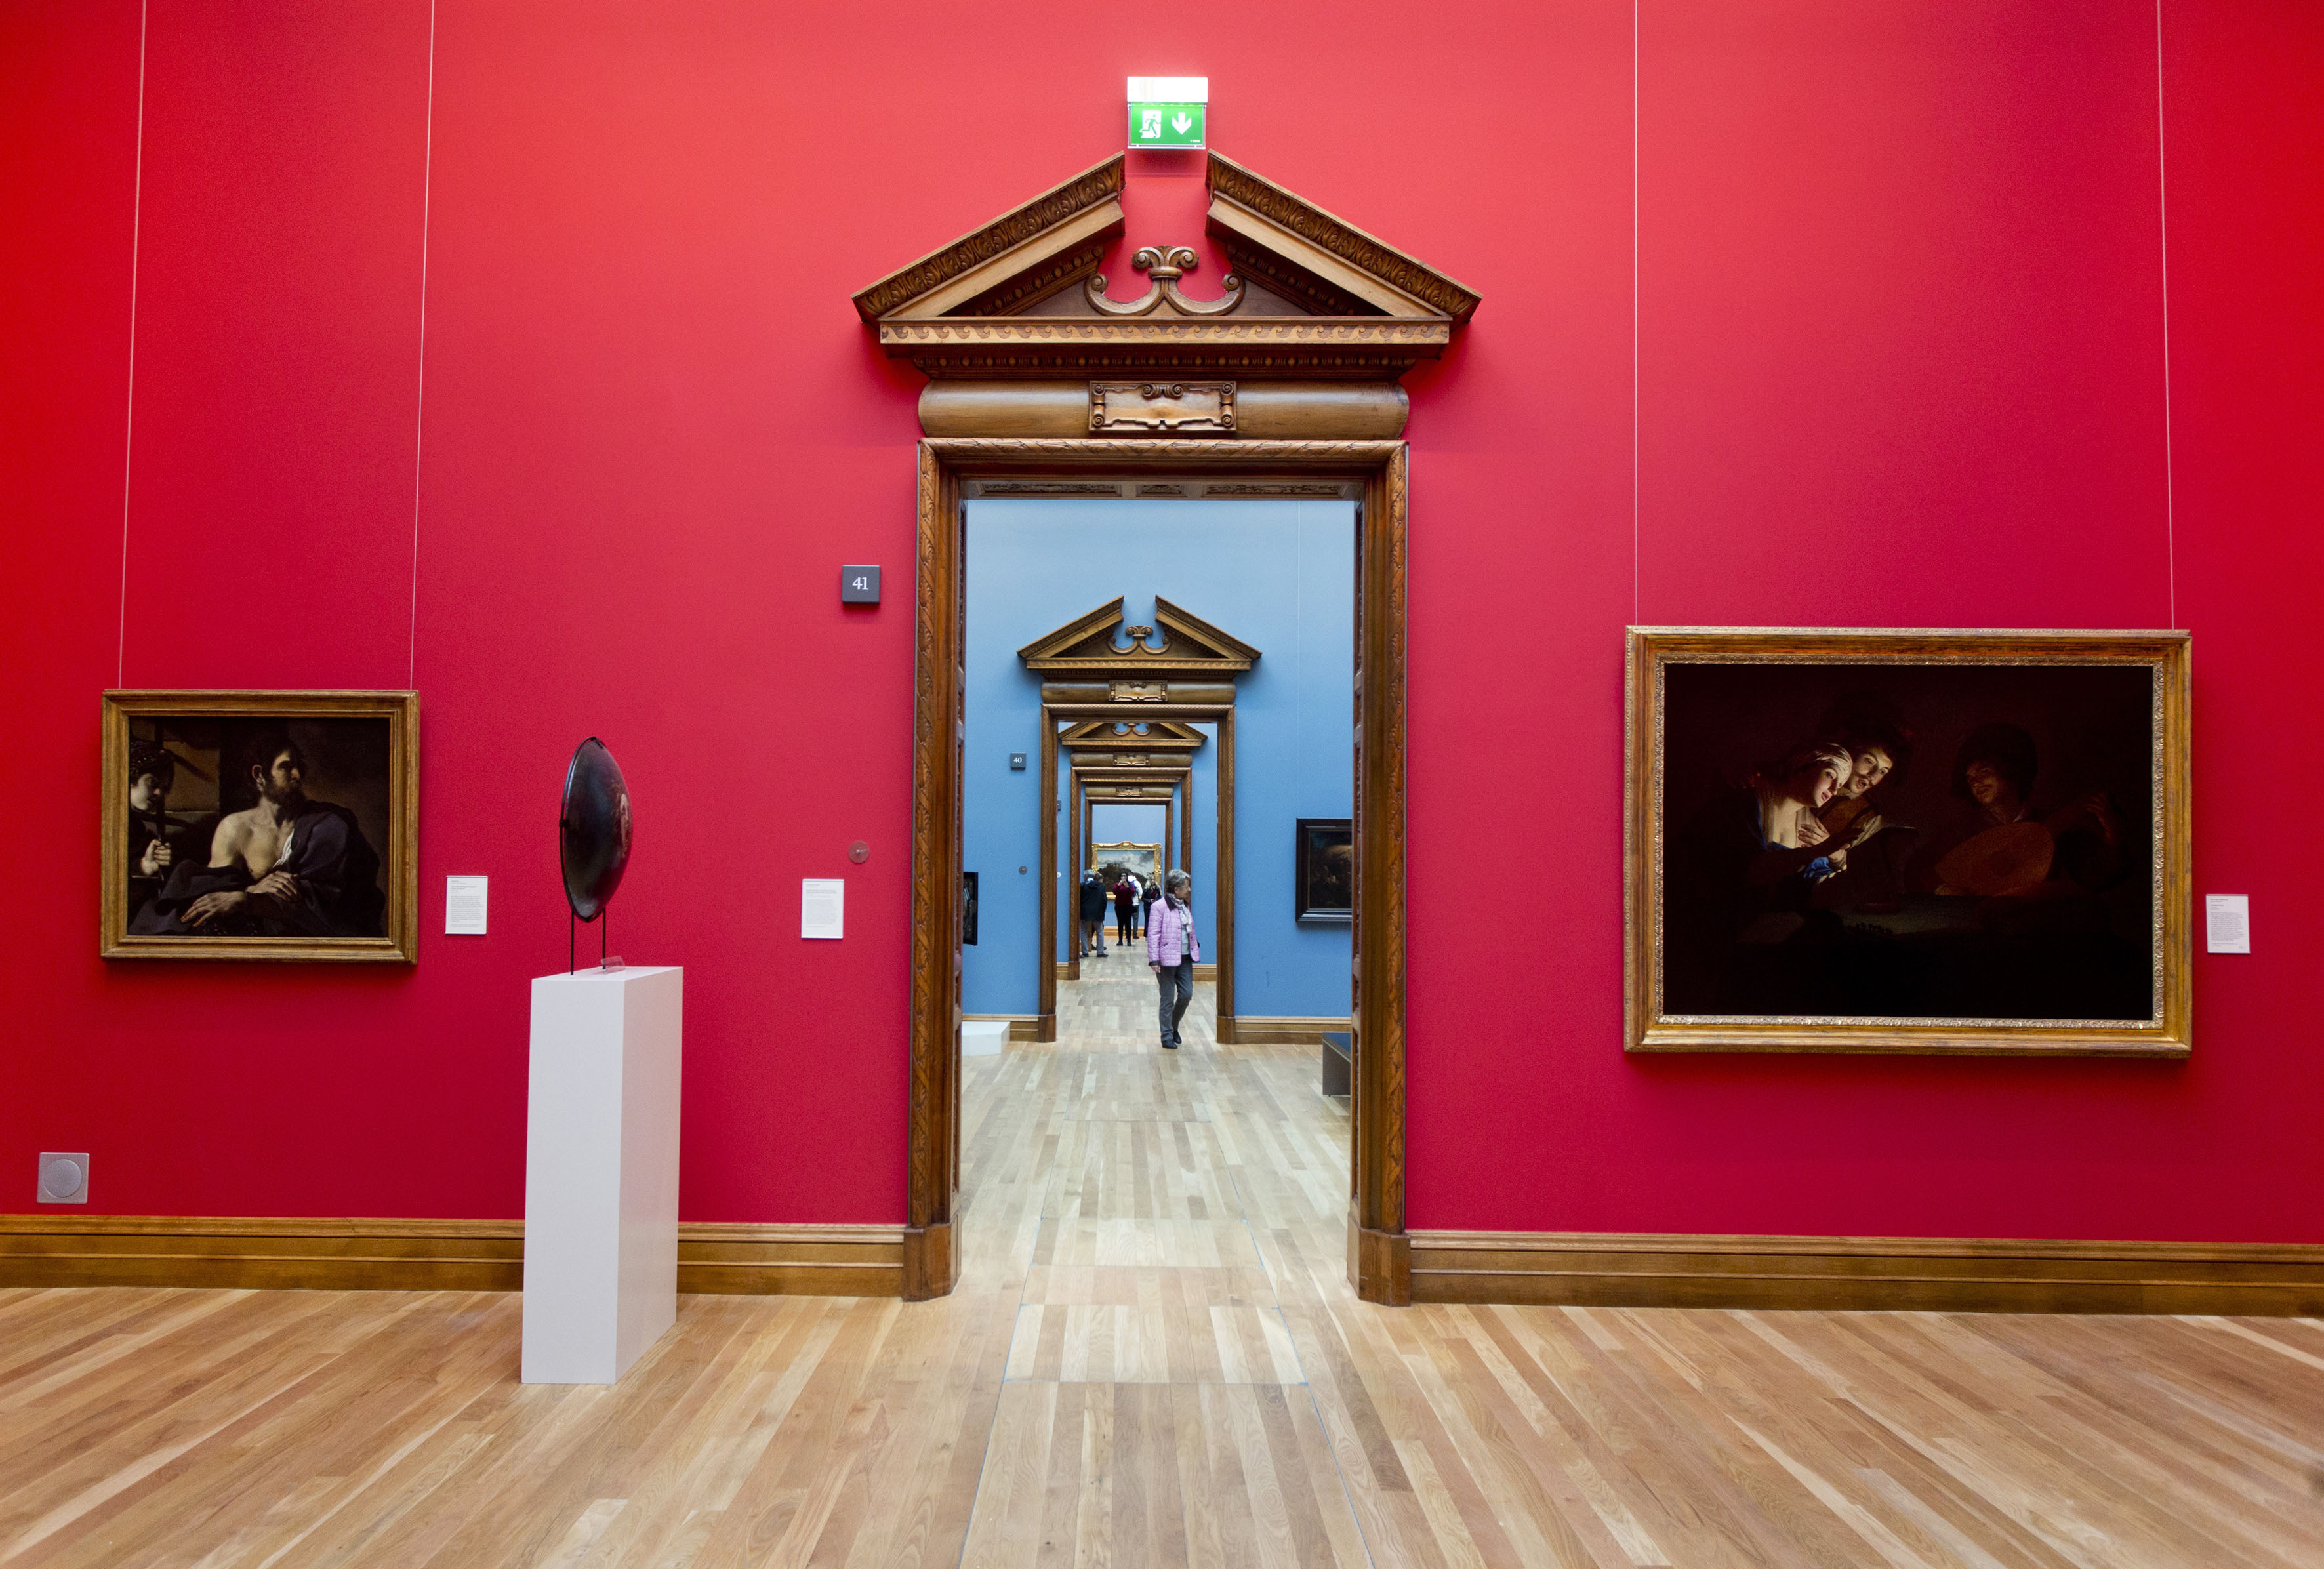 ASSA ABLOY security doorsets at National Gallery of Ireland